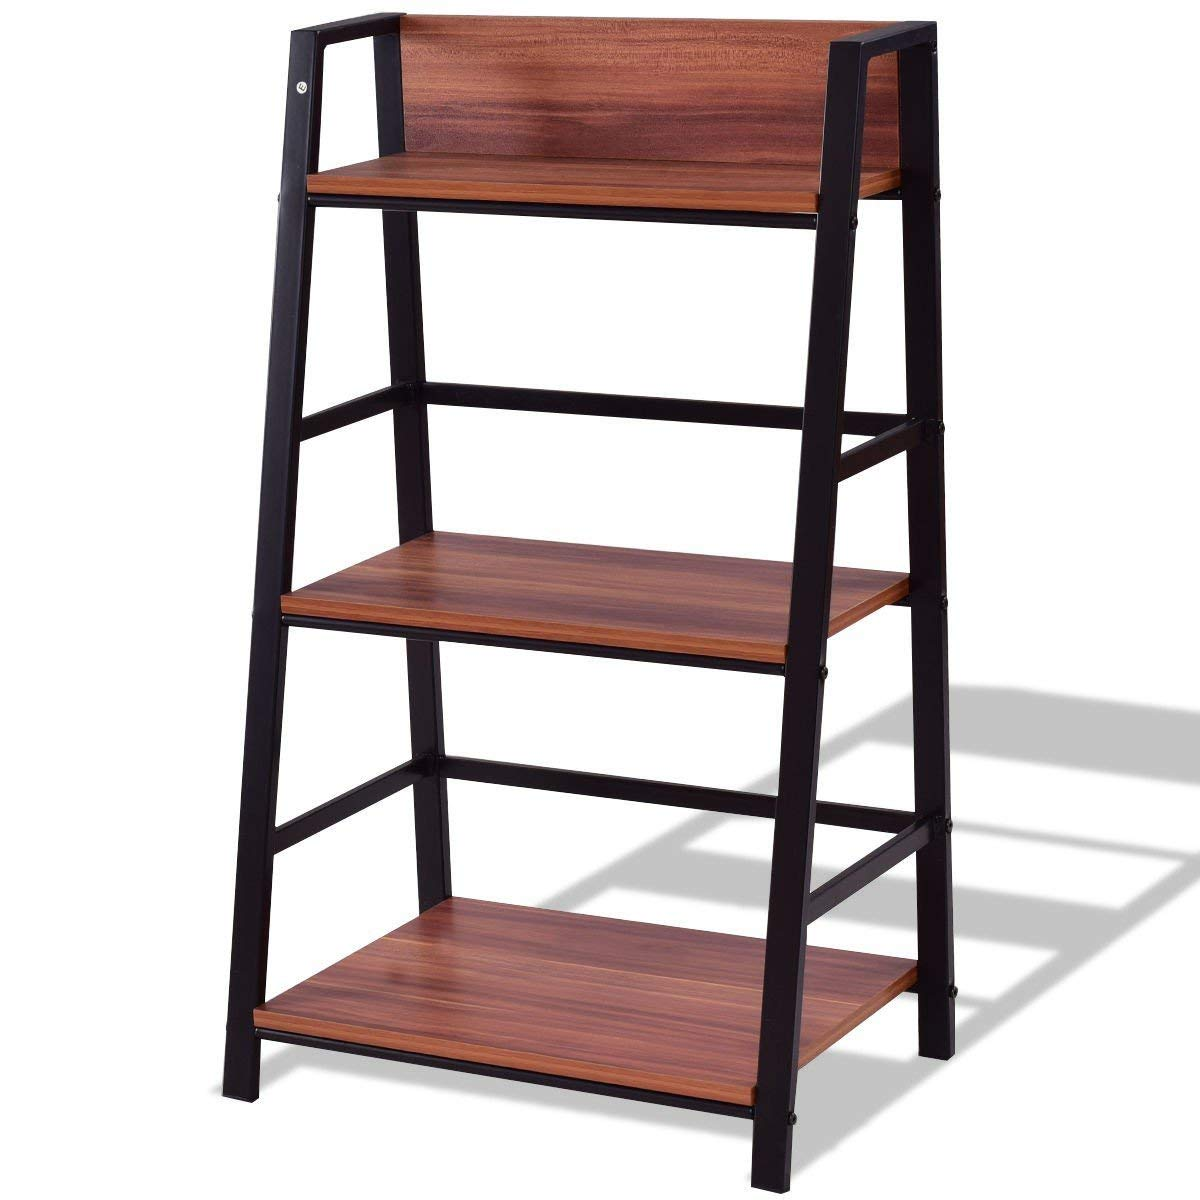 Get Quotations Custpromo 3 Tier Stand Ladder Shelf Bookcase Storage Rack Bookshelf Plant Display Home Office